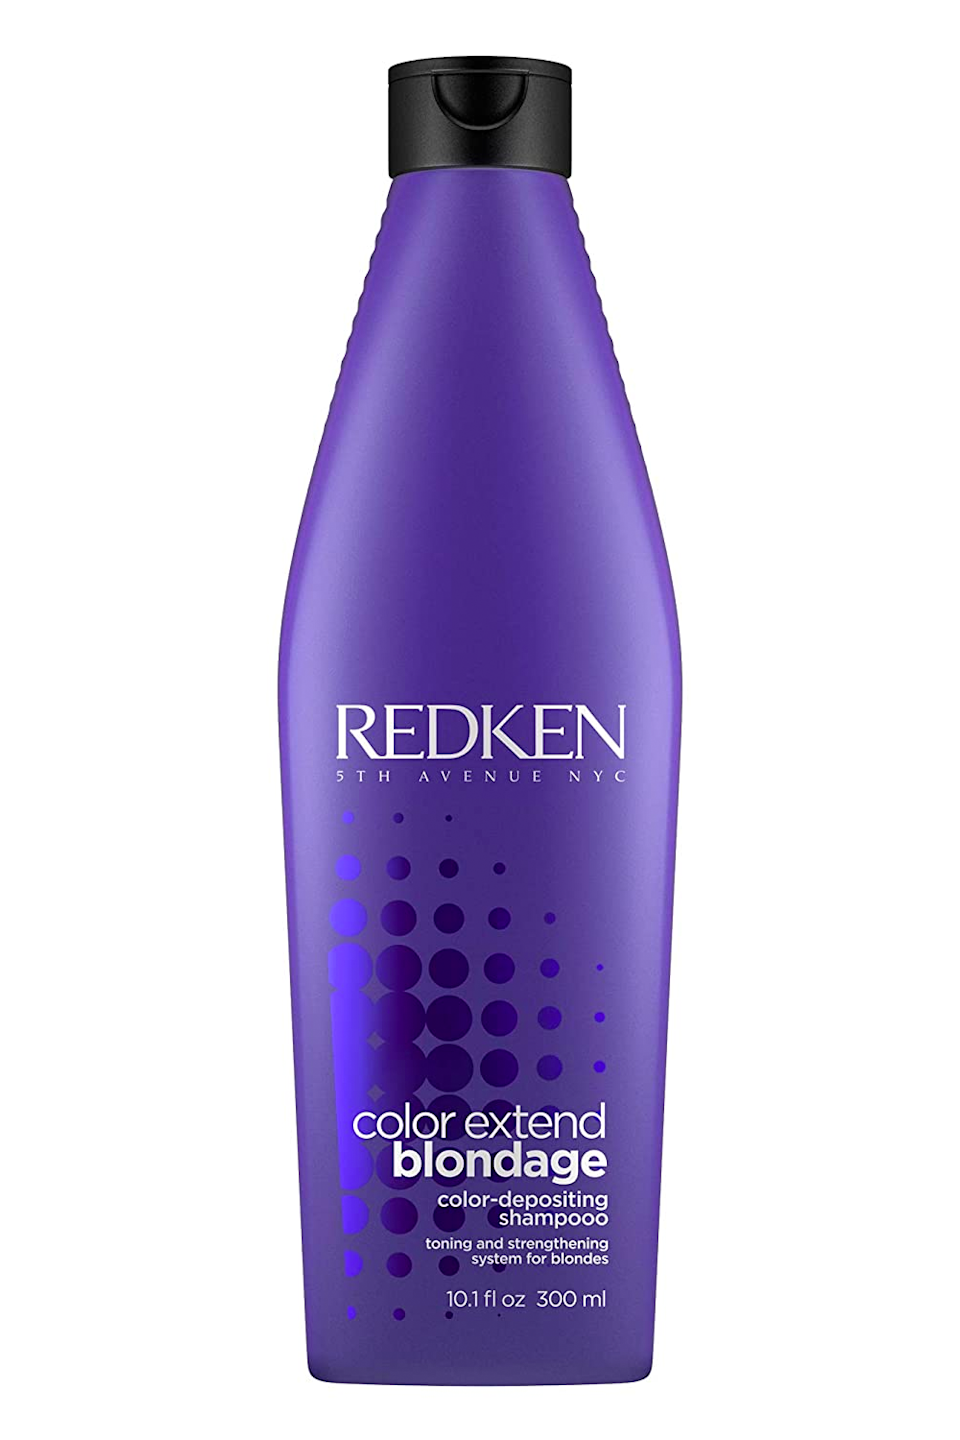 """<p><strong>REDKEN</strong></p><p>ulta.com</p><p><strong>$40.00</strong></p><p><a href=""""https://go.redirectingat.com?id=74968X1596630&url=https%3A%2F%2Fwww.ulta.com%2Fcolor-extend-blondage-color-depositing-purple-shampoo%3FproductId%3DxlsImpprod18231009&sref=https%3A%2F%2Fwww.cosmopolitan.com%2Fstyle-beauty%2Fbeauty%2Fg33576495%2Fbest-hair-toner%2F"""" rel=""""nofollow noopener"""" target=""""_blank"""" data-ylk=""""slk:Shop Now"""" class=""""link rapid-noclick-resp"""">Shop Now</a></p><p>Speaking of in-shower toners, blondes can't go wrong with a good ol' <a href=""""https://www.cosmopolitan.com/style-beauty/beauty/g10225071/best-purple-shampoo/"""" rel=""""nofollow noopener"""" target=""""_blank"""" data-ylk=""""slk:purple shampoo"""" class=""""link rapid-noclick-resp"""">purple shampoo</a>. This one from Redken not only cleanses and hydrates your hair, but also blasts it with neutralizing violet pigments. The result? <strong>Smoother, cooler-toned blonde hair with zero brass</strong>. Just don't overuse it, k? Think of it as a spot treatment for when your hair is looking dull or brassy.</p>"""